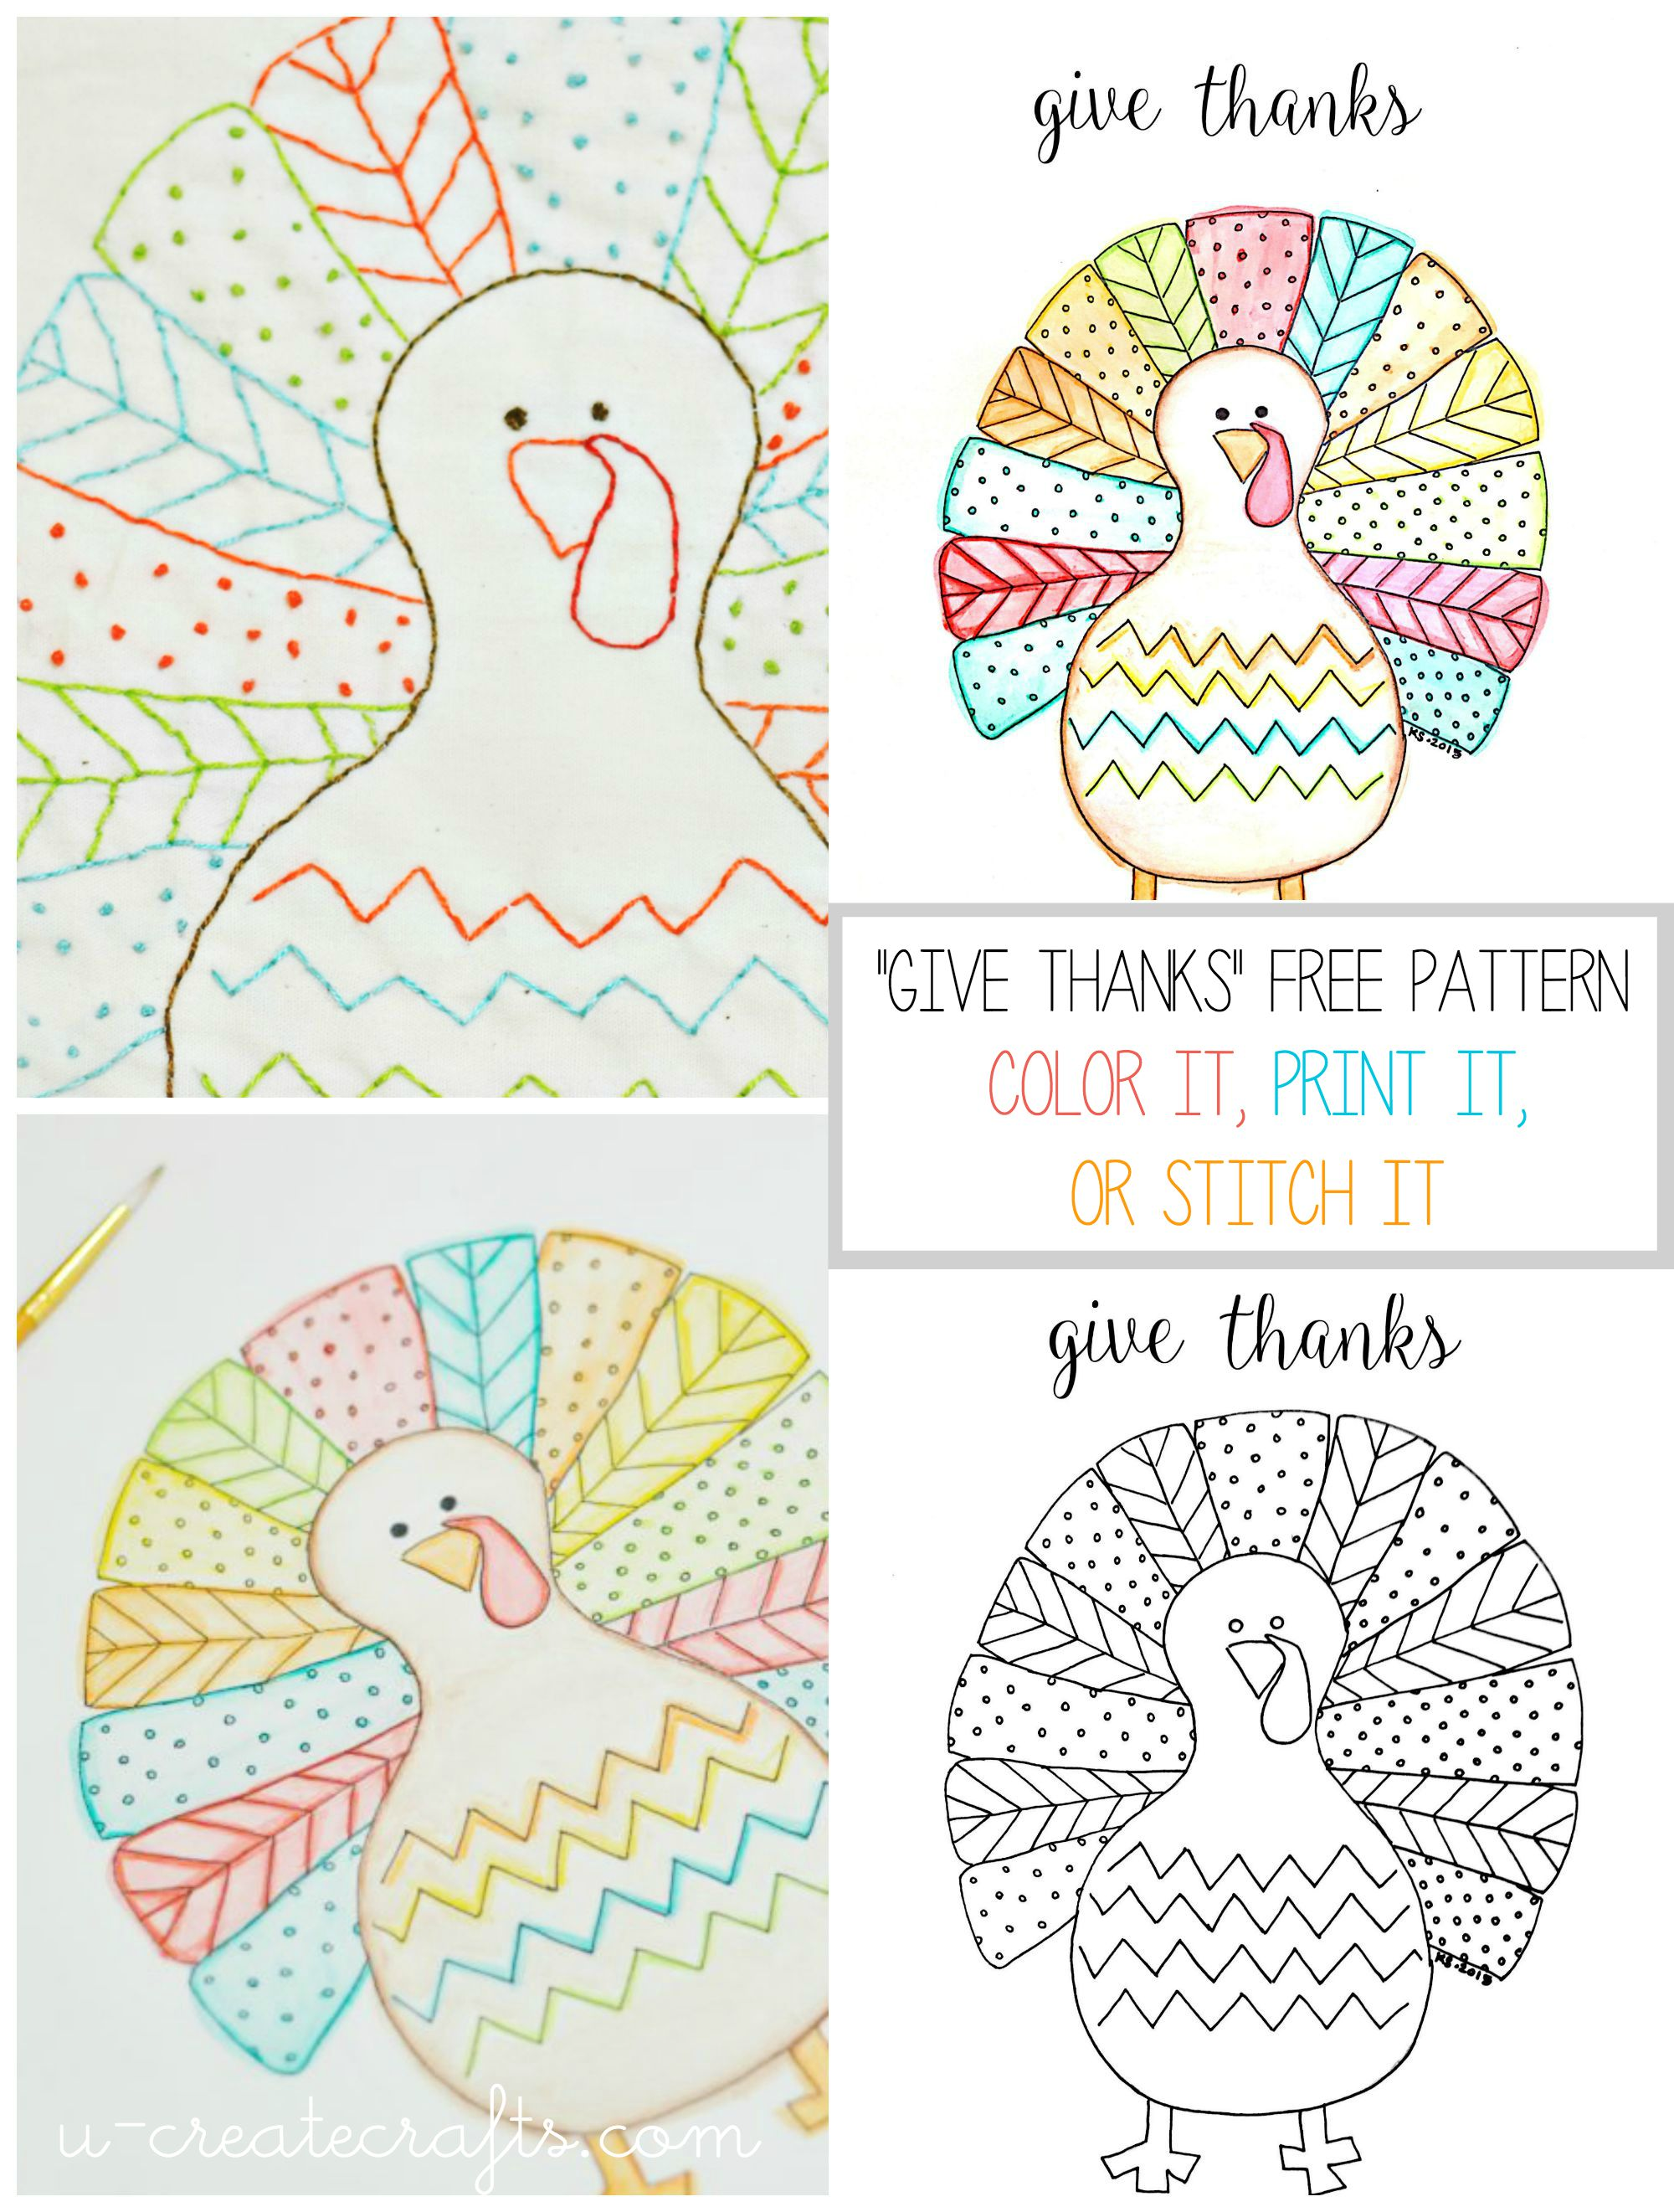 graphic about Pattern Printable titled Drop Turkey Printable - U Produce